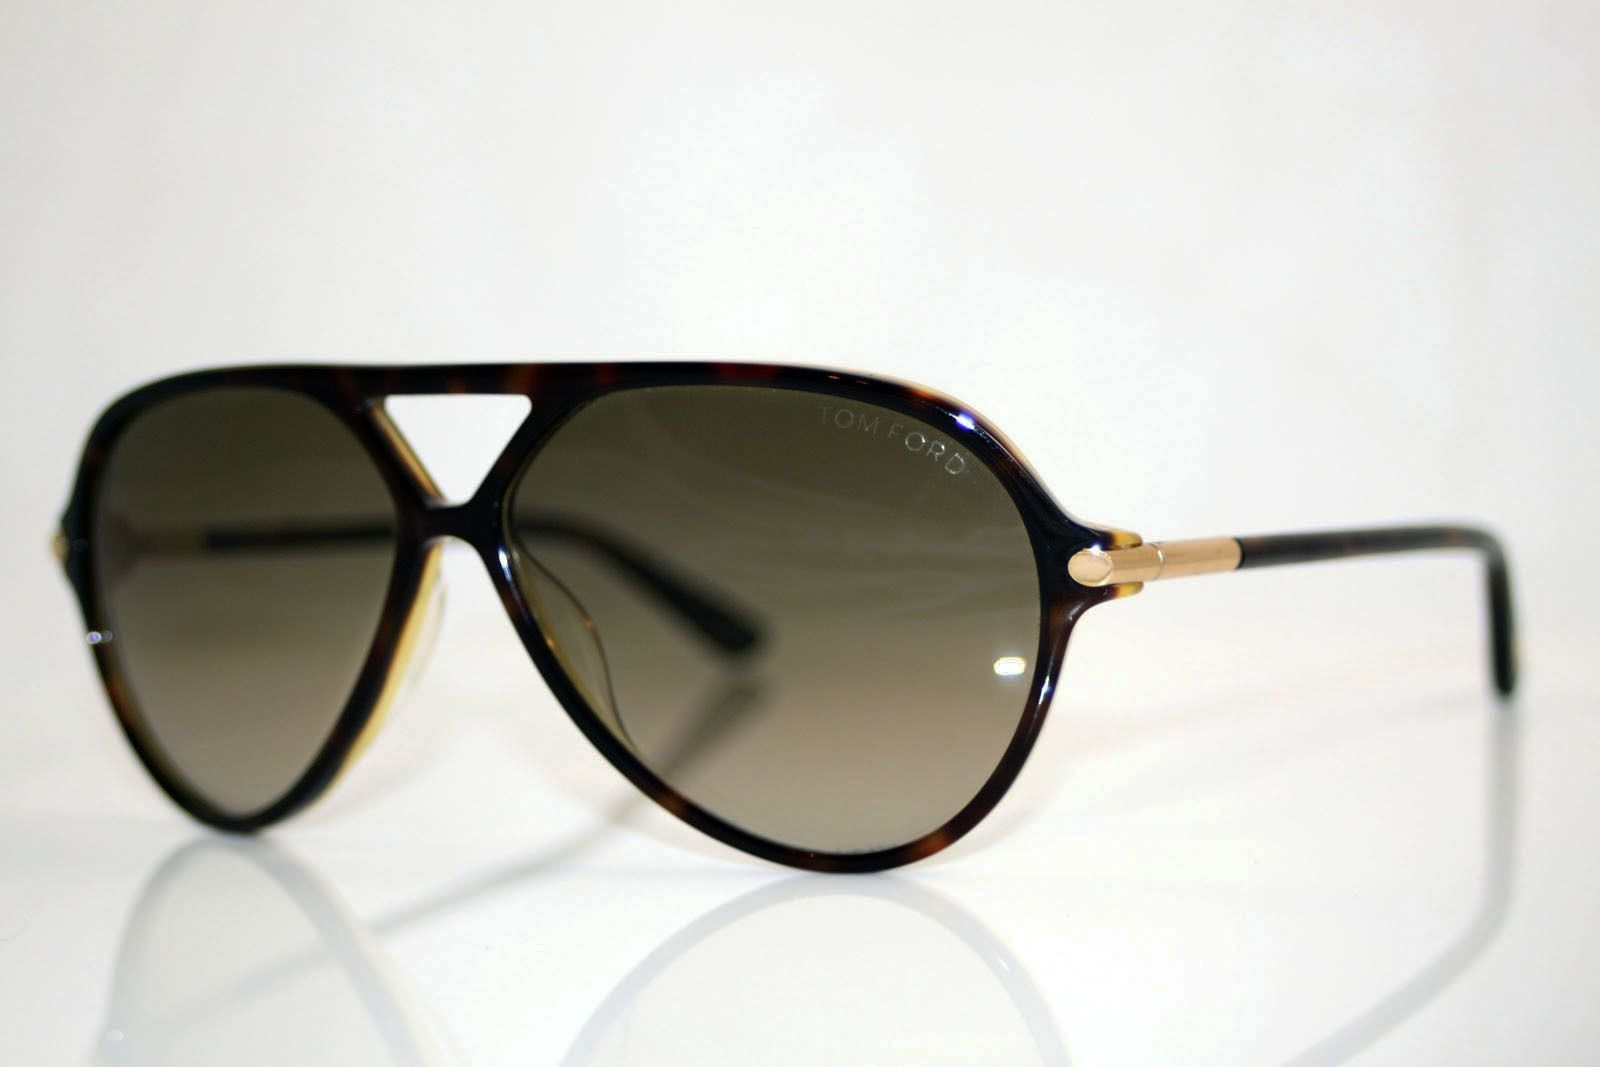 97fee15a01 Tom Ford Sunglasses (Men s Pre-owned Leopold Brown   Black Aviator Sun  Glasses)